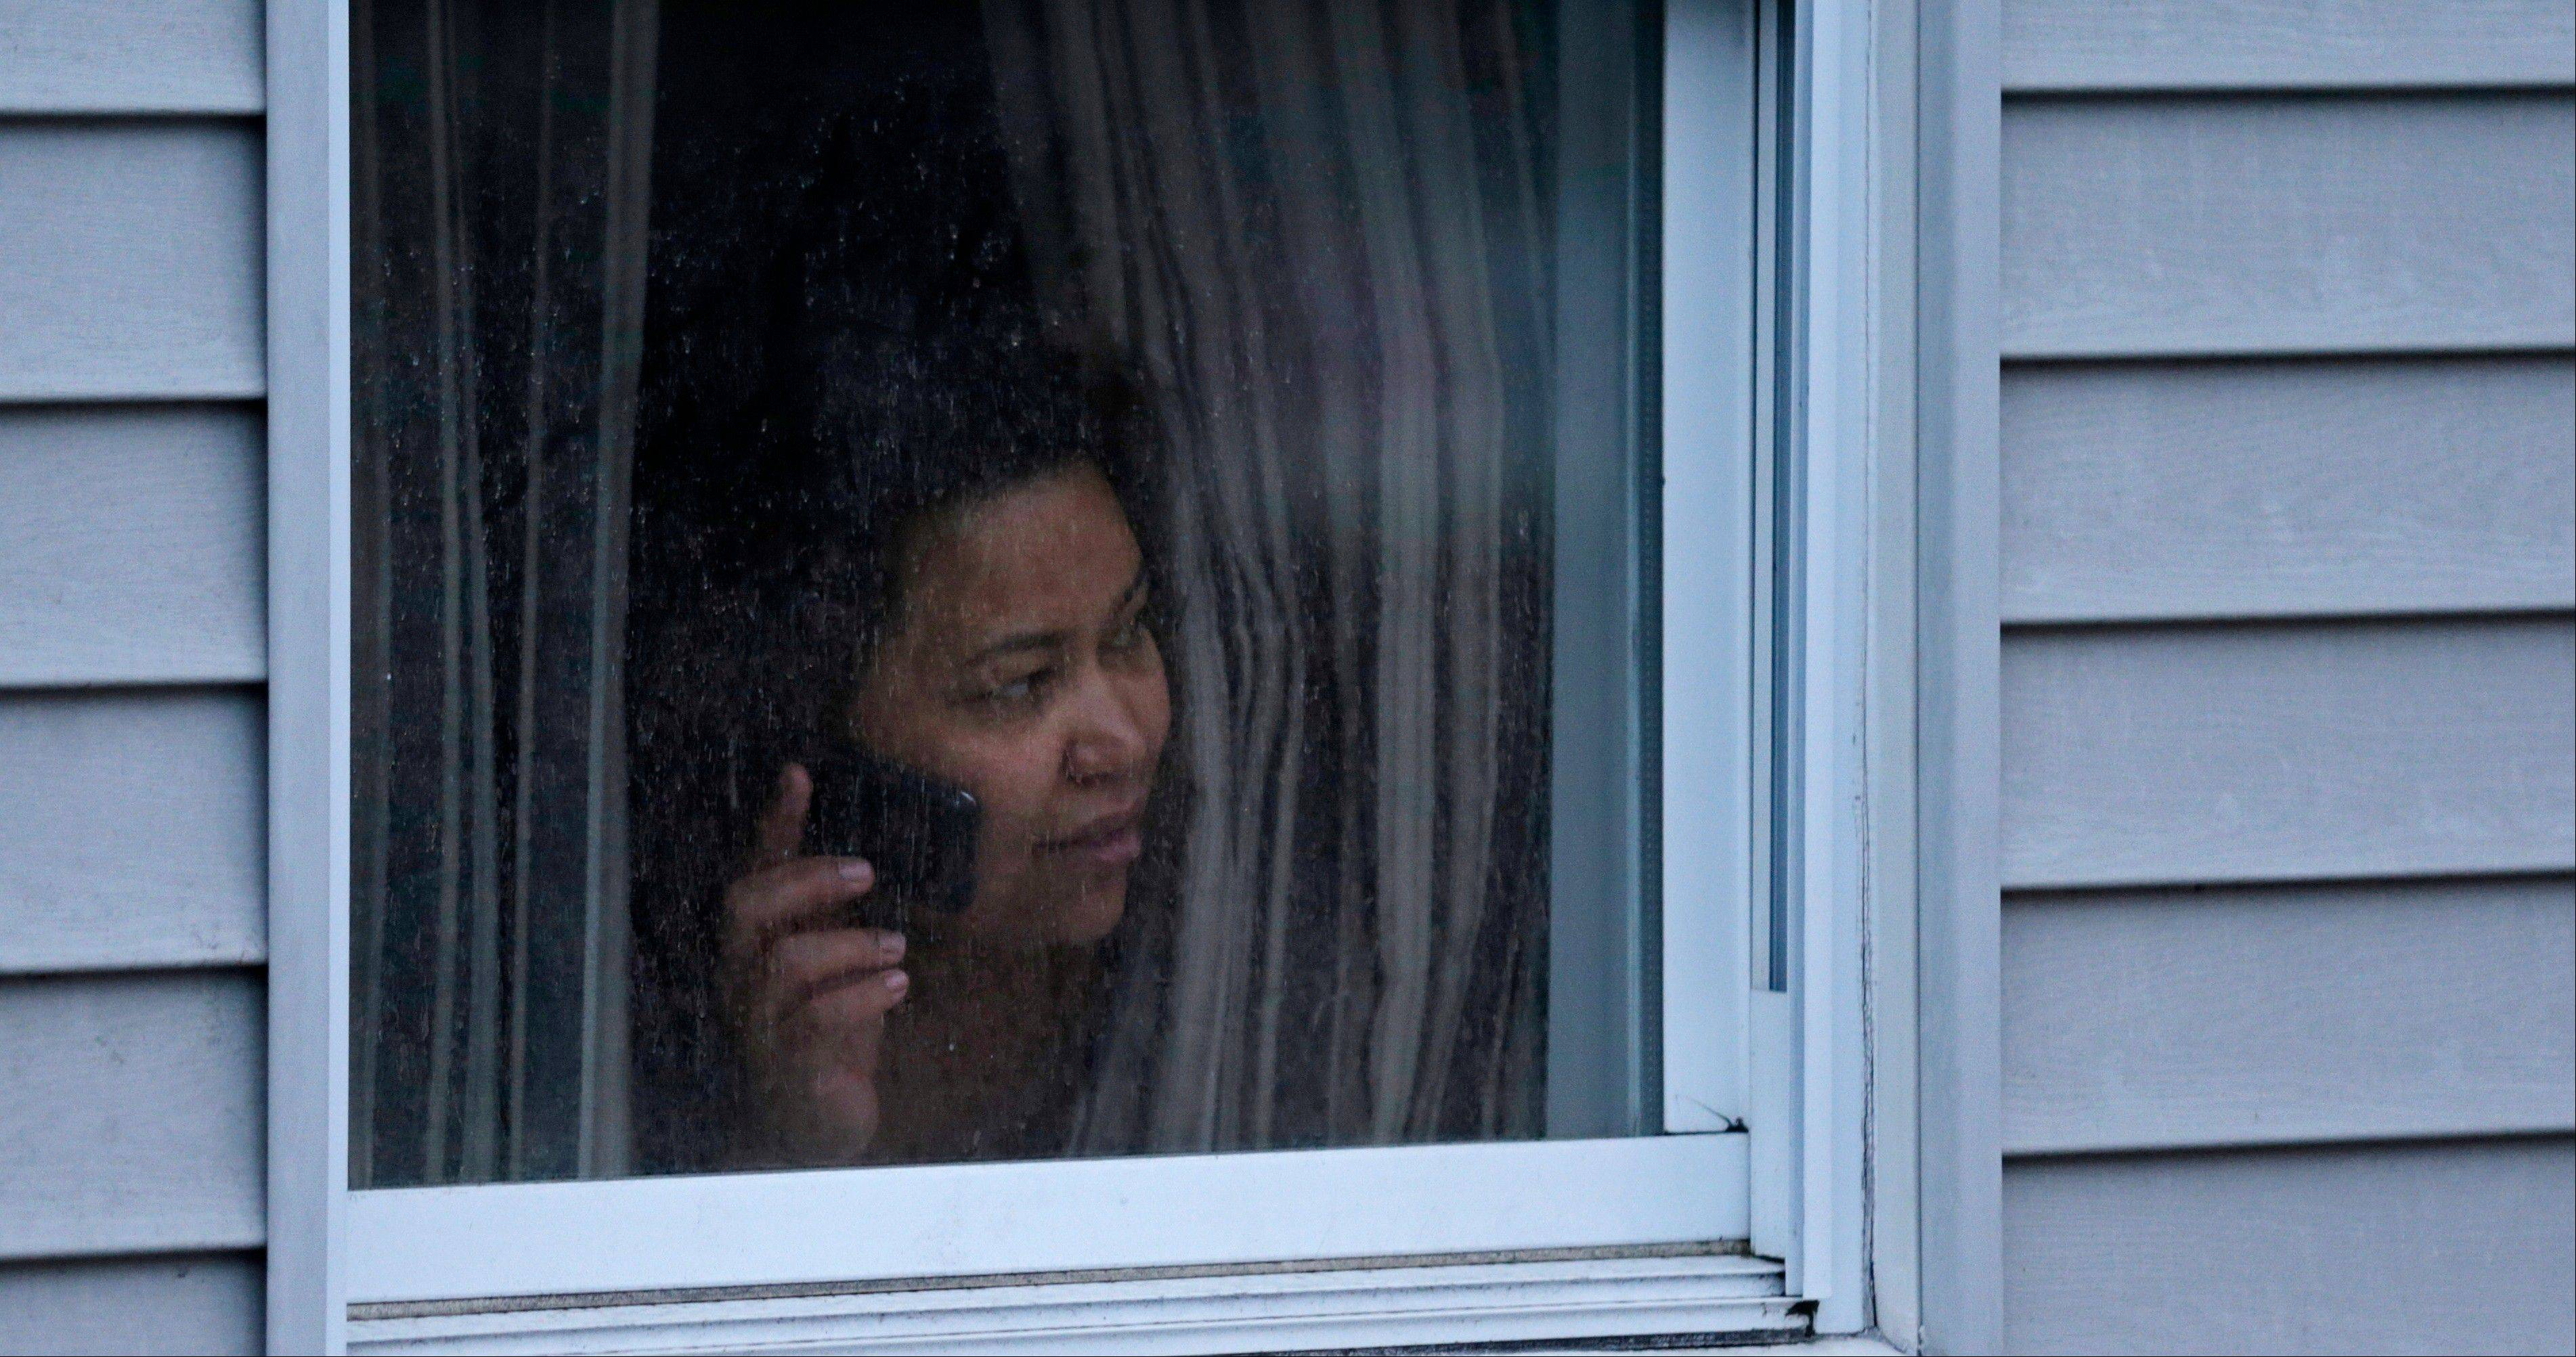 A woman looks out a window at her home as police start to search an apartment building while looking for a suspect in the Boston Marathon bombings in Watertown, Mass., Friday, April 19, 2013. Two suspects in the Boston Marathon bombing killed an MIT police officer, injured a transit officer in a firefight and threw explosive devices at police during their getaway attempt in a long night of violence that left one of them dead and another still at large Friday, authorities said as the manhunt intensified for a young man described as a dangerous terrorist.